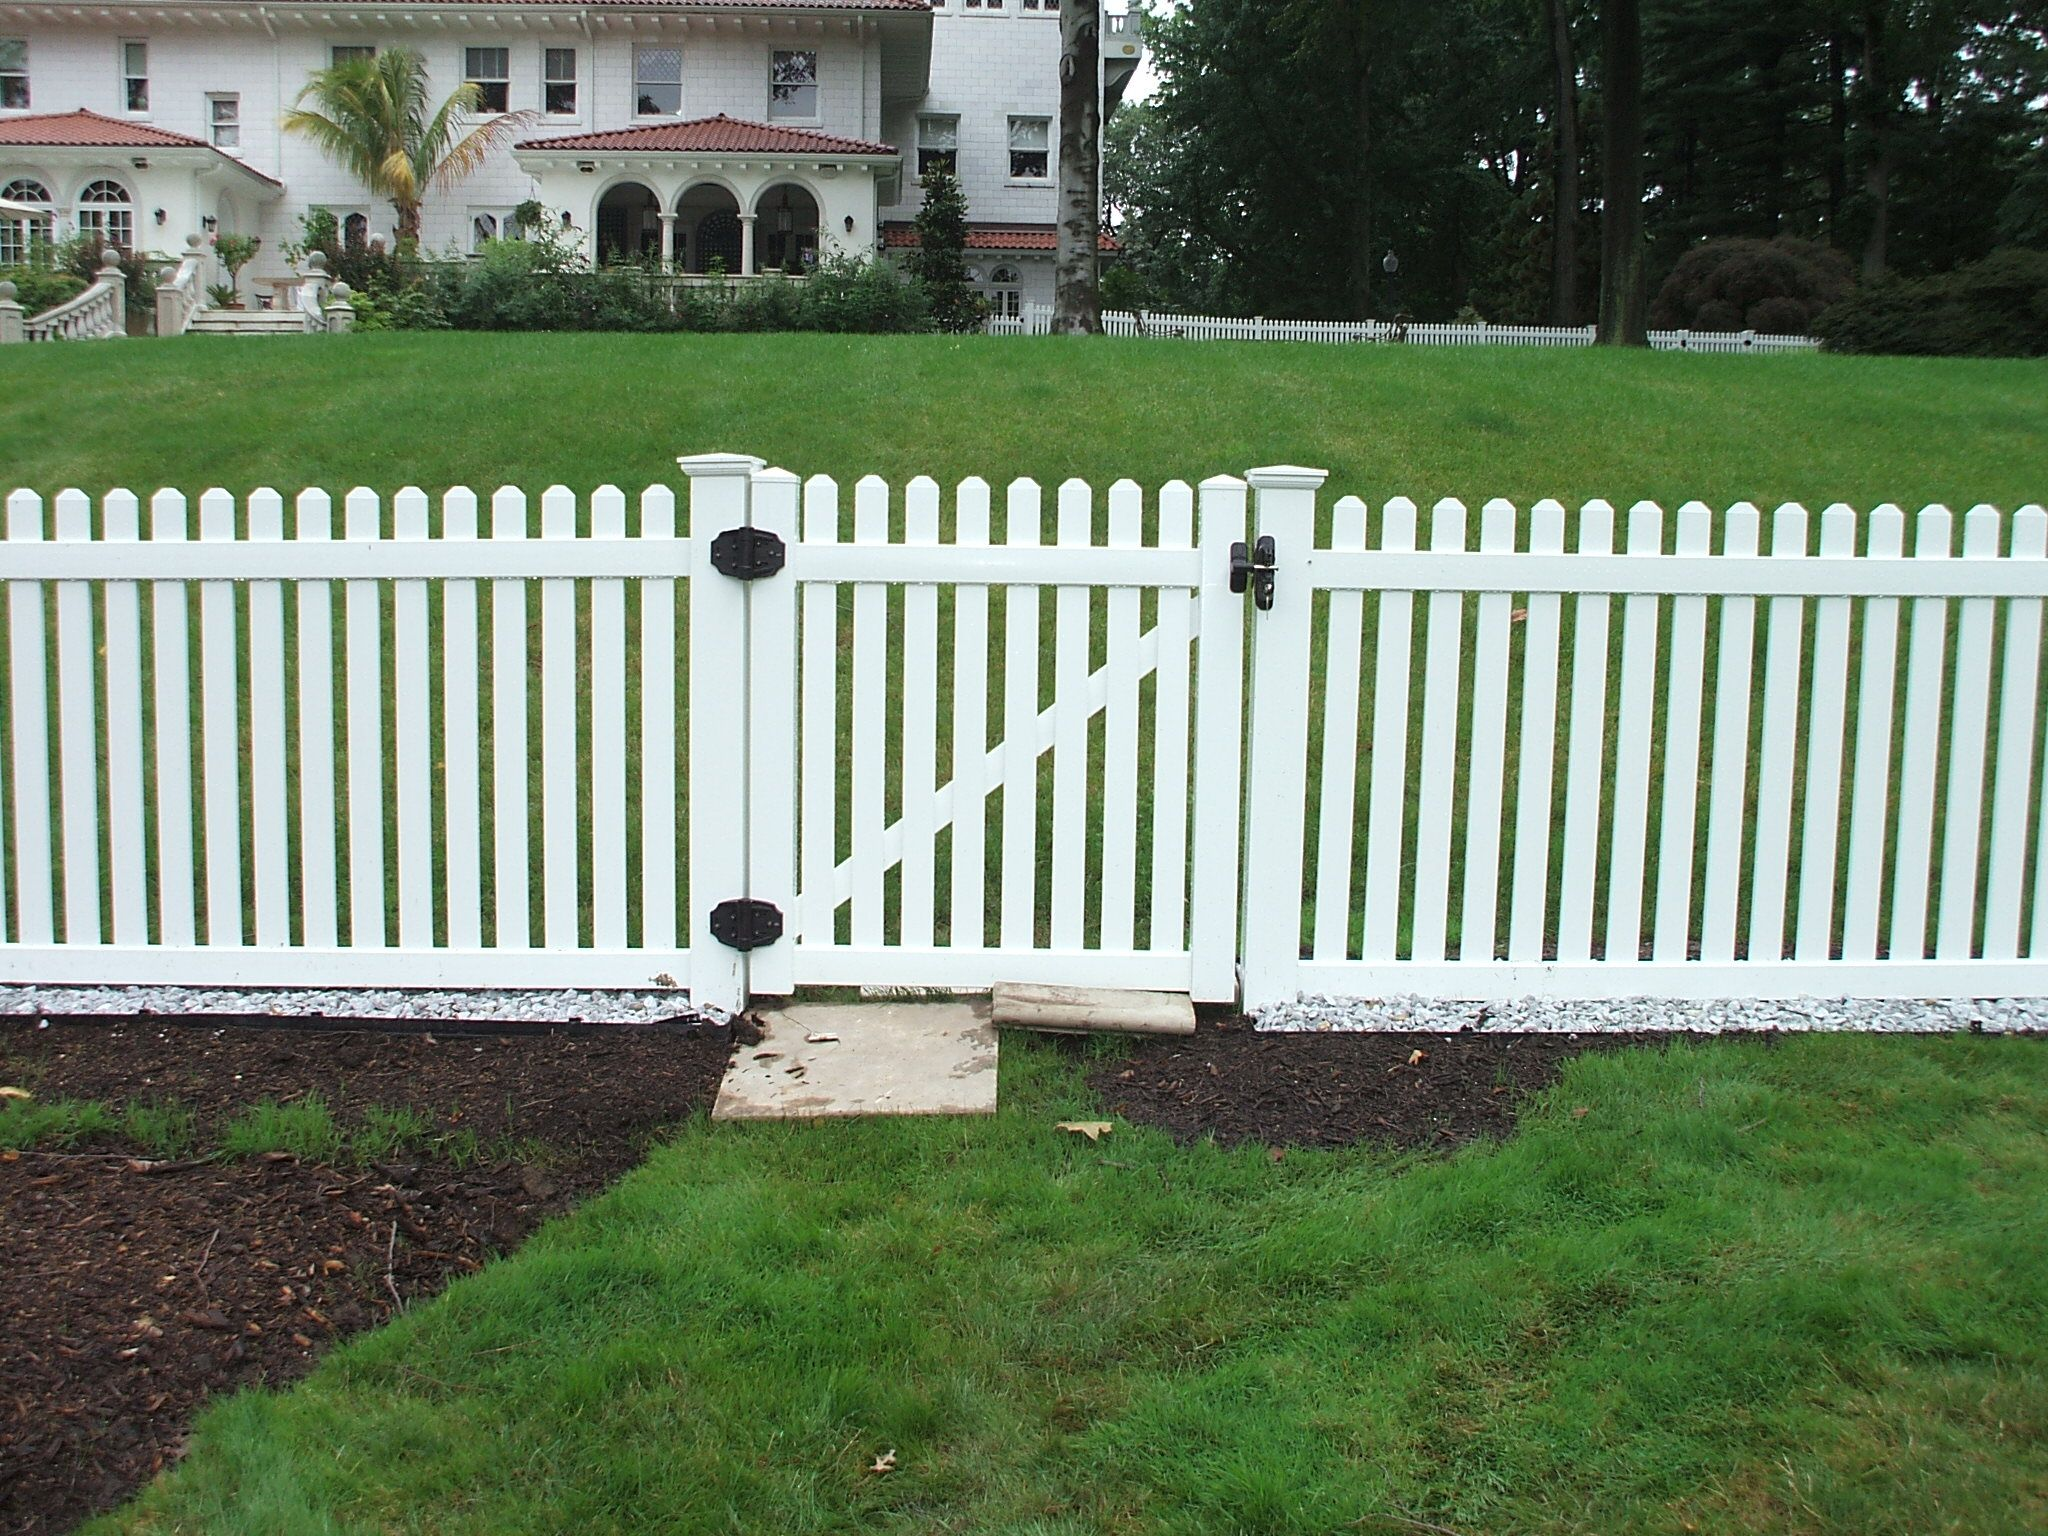 With a Contemporary Picket White PVC fence you don't have